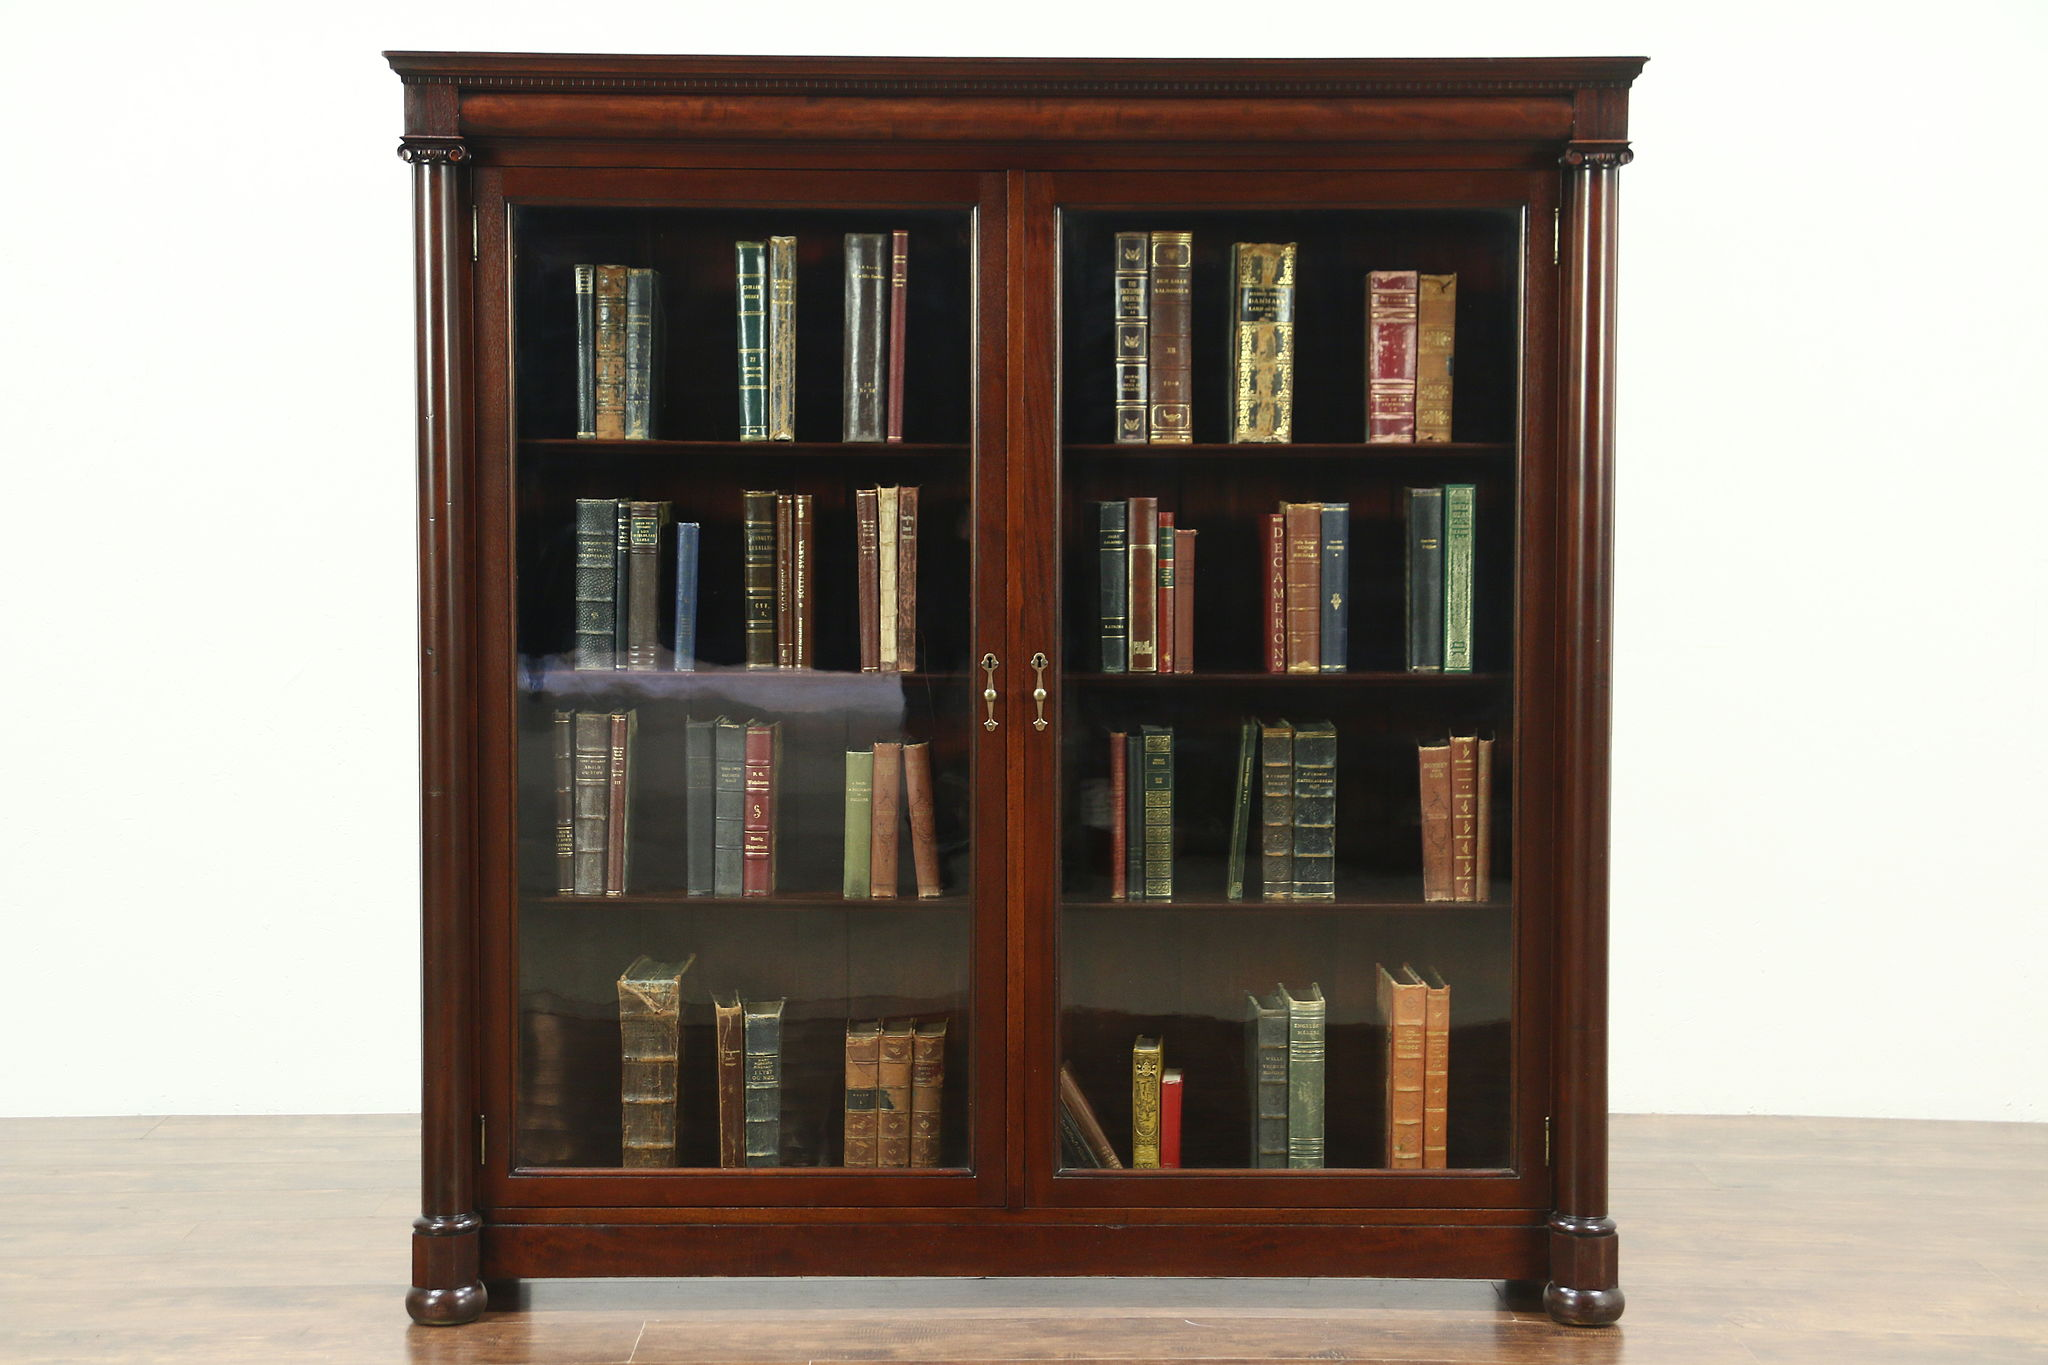 Empire 1900 Antique Mahogany Classical Library Bookcase, Wavy Glass Doors